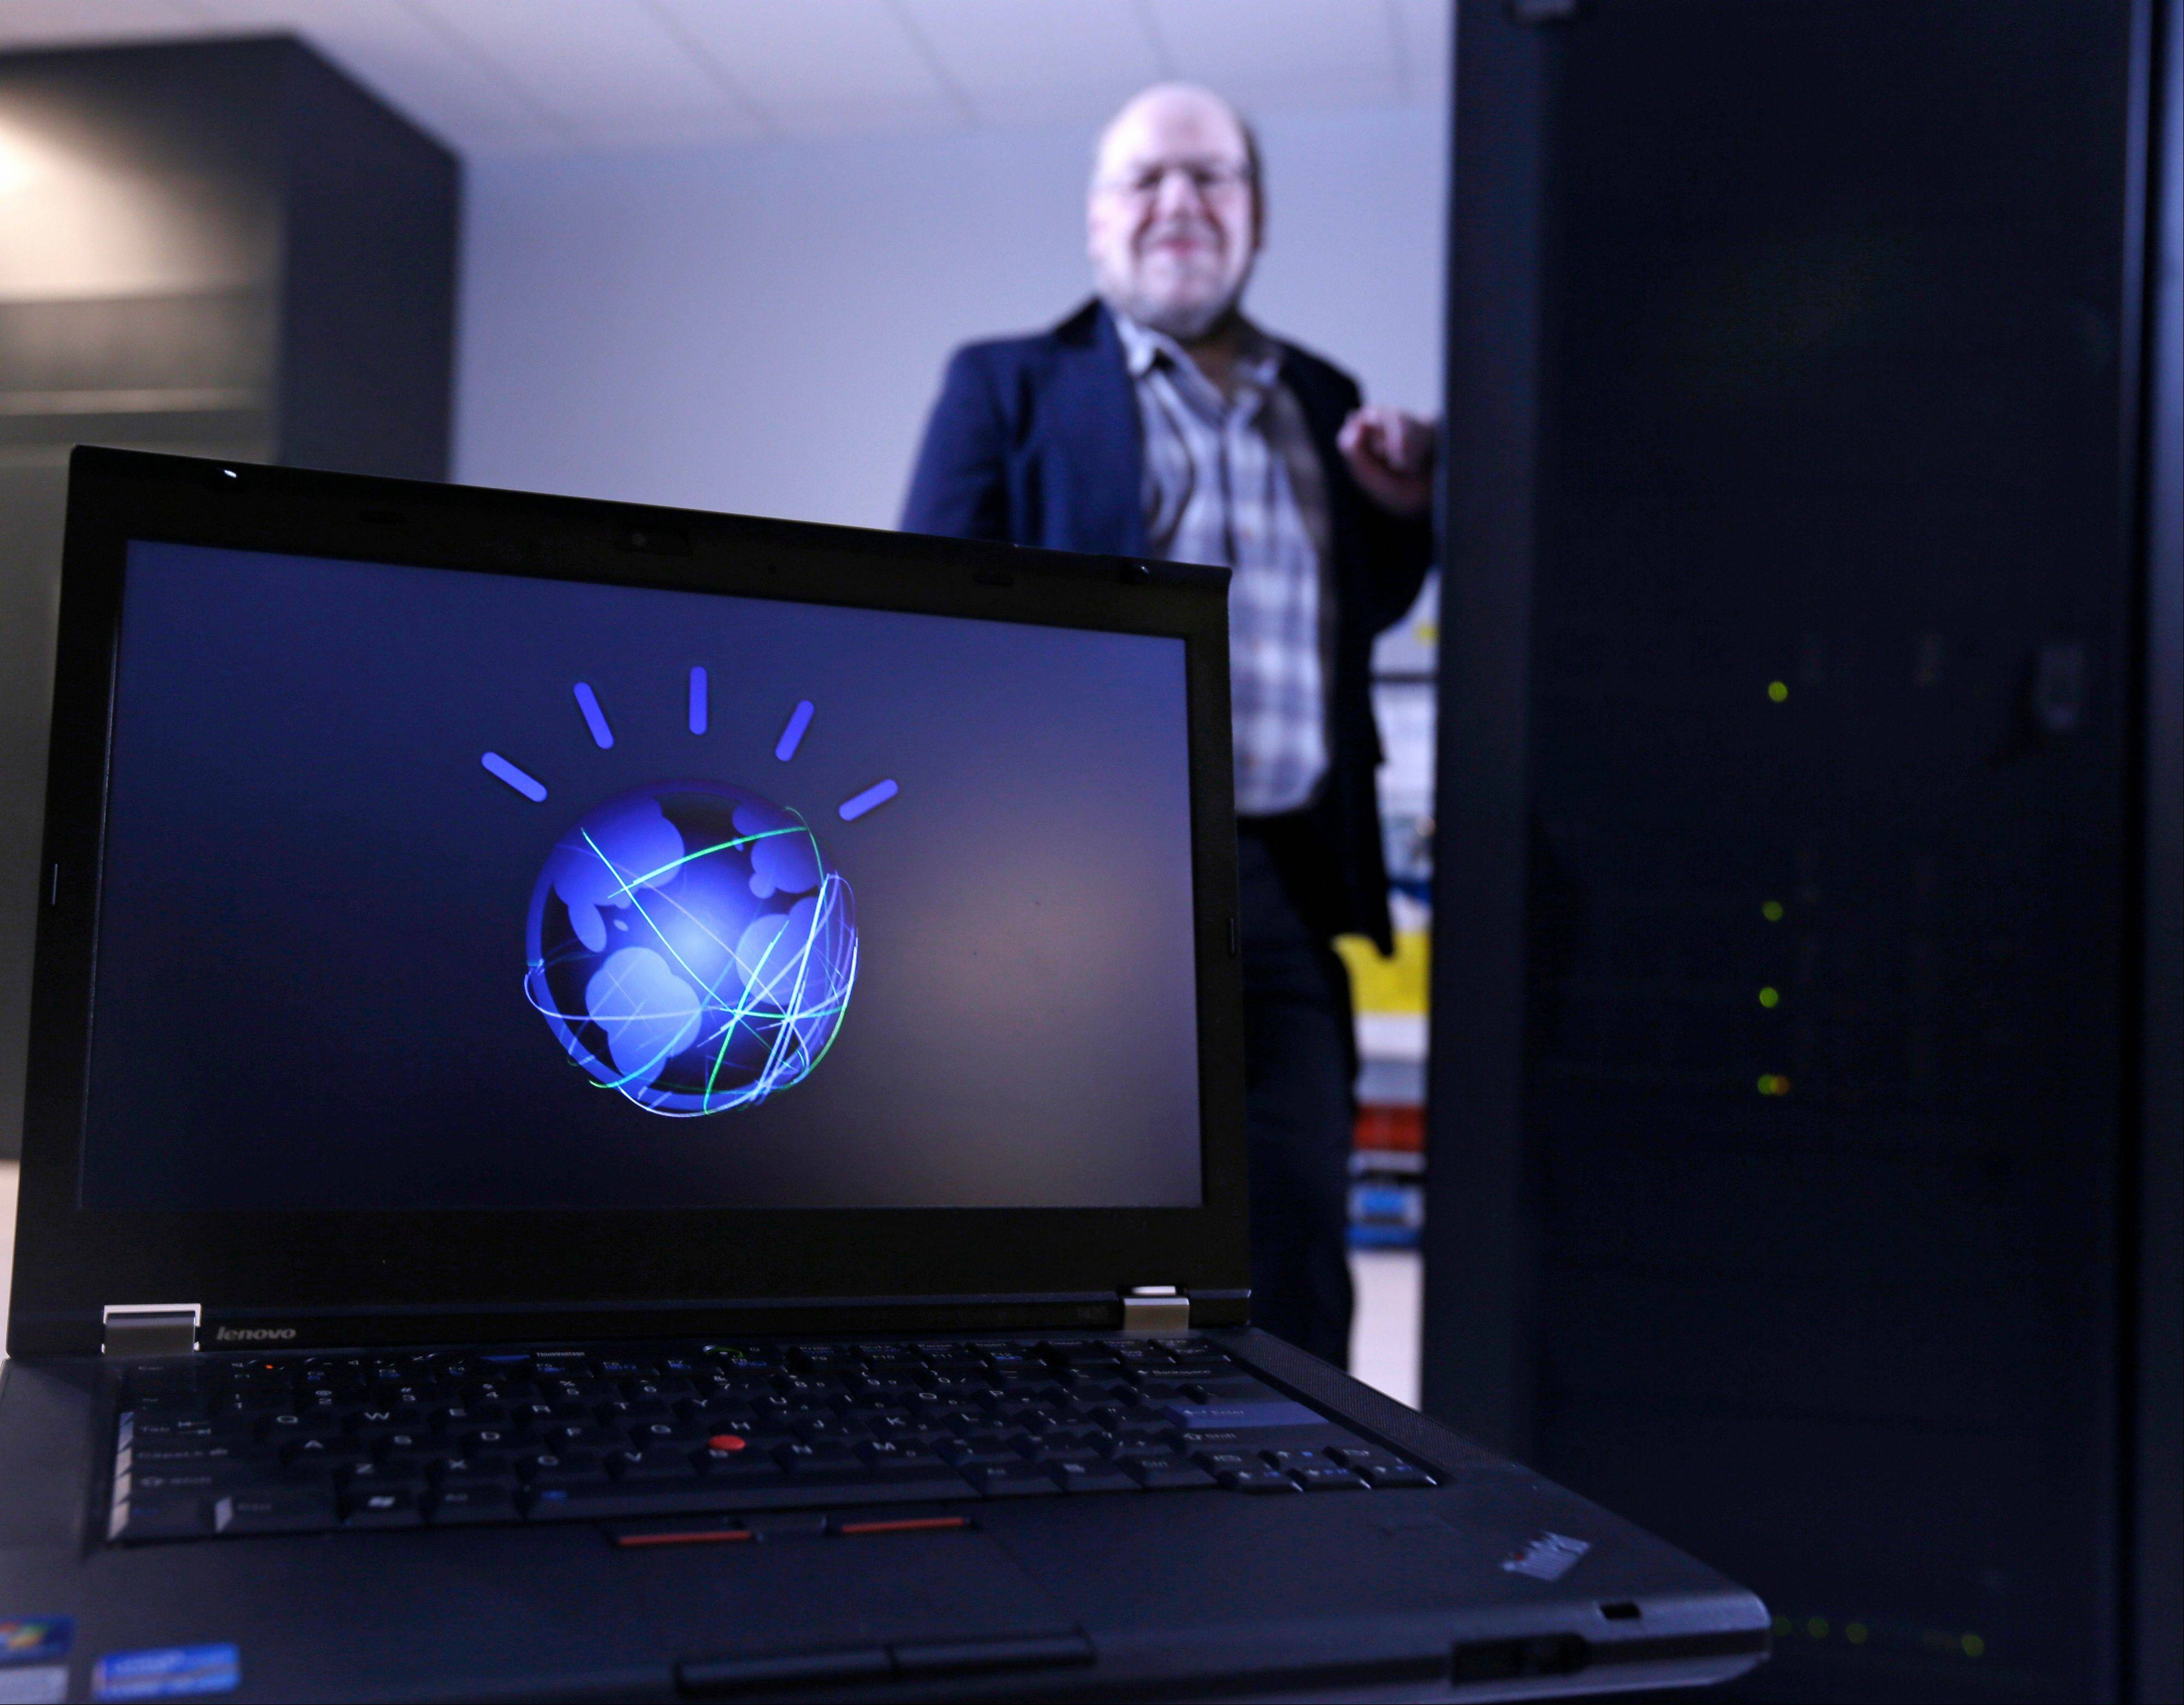 "Jim Hendler, who heads the computer science department at Rensselaer Polytechnic Institute, poses next to the supercomputer Watson at the Computational Center for Nanotechnology Innovations in Troy, N.Y. Watson, the question-answering supercomputer best known for beating human champions on ""Jeopardy!,"" is going to college. IBM is announcing Wednesday that it will provide a Watson system to RPI, the first time a version of the computer is being sent to a university. The avatar on the computer screen represented Watson on ""Jeopardy!."""